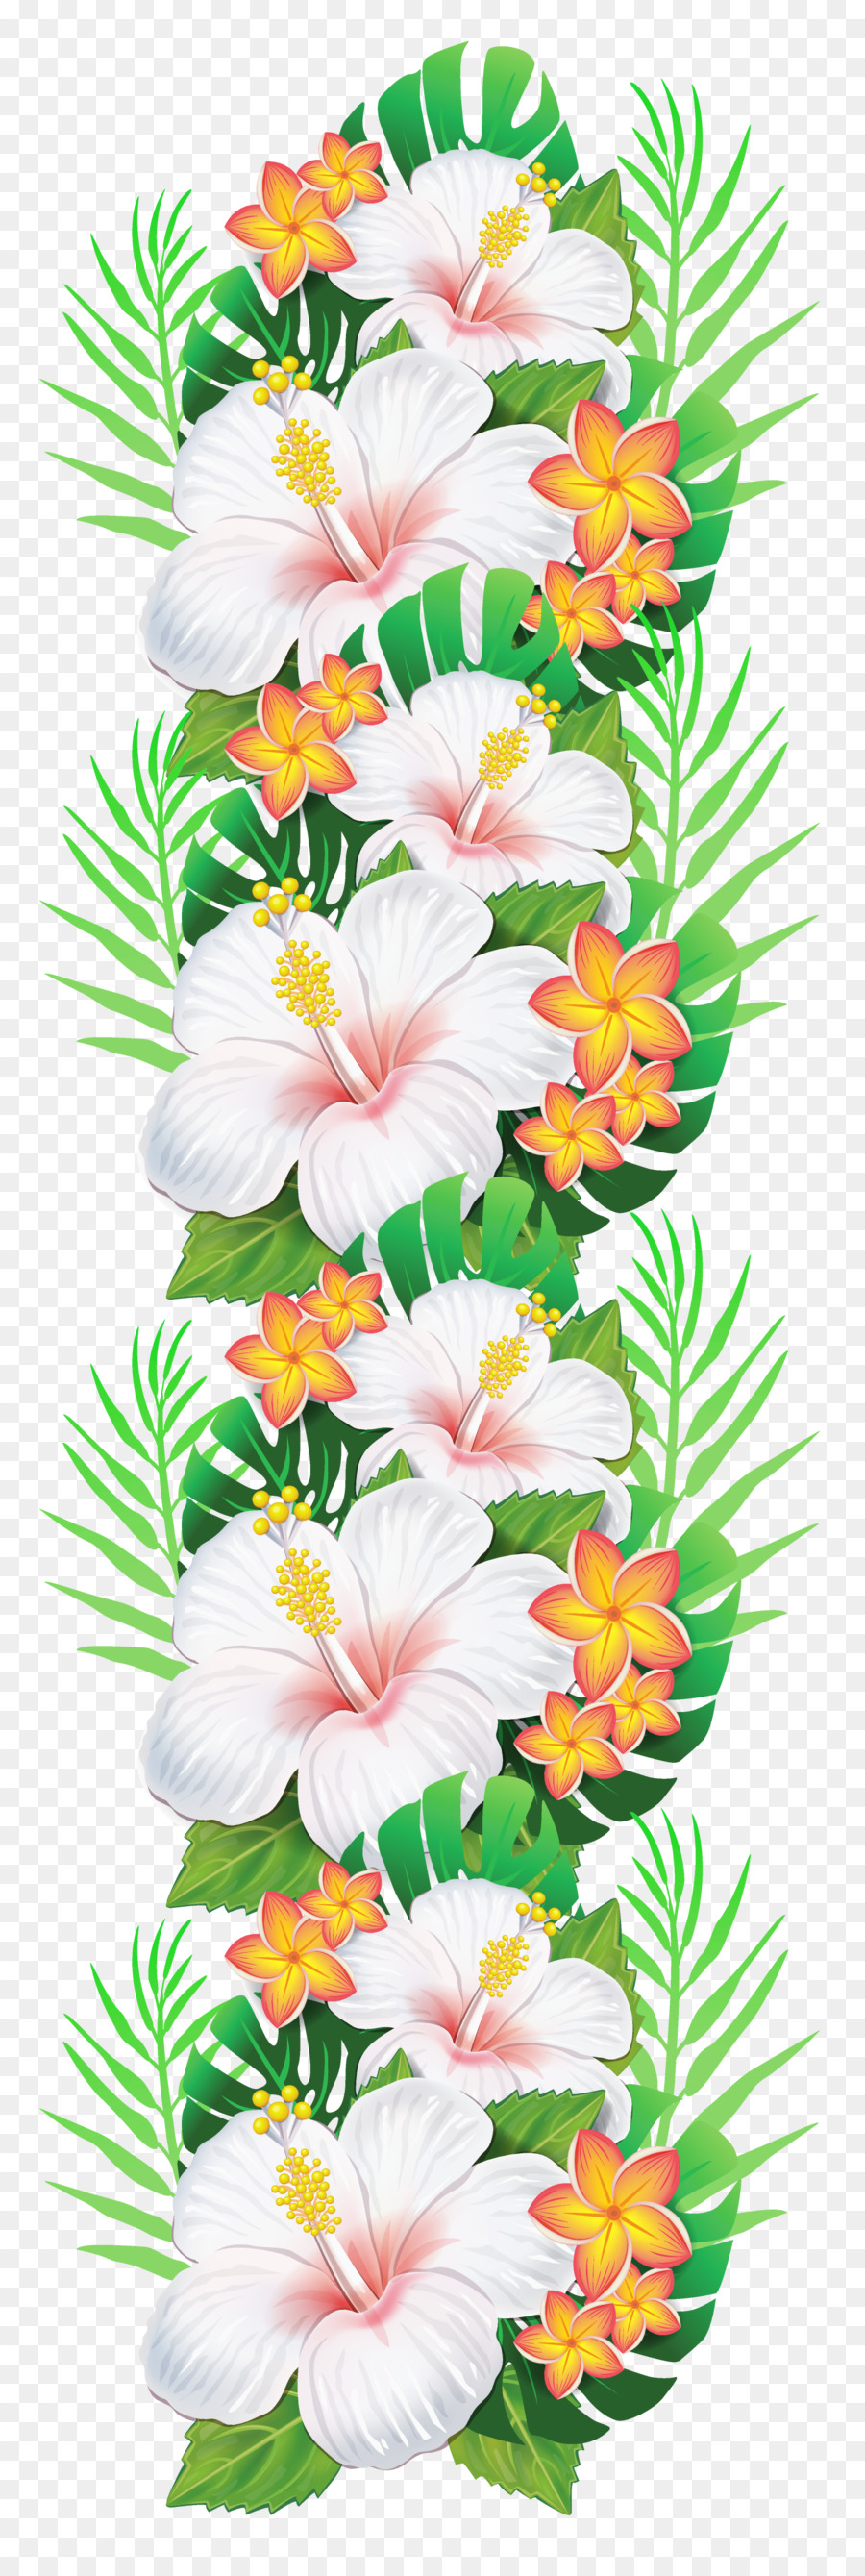 Hibiscus clipart garland. Floral flower background transparent